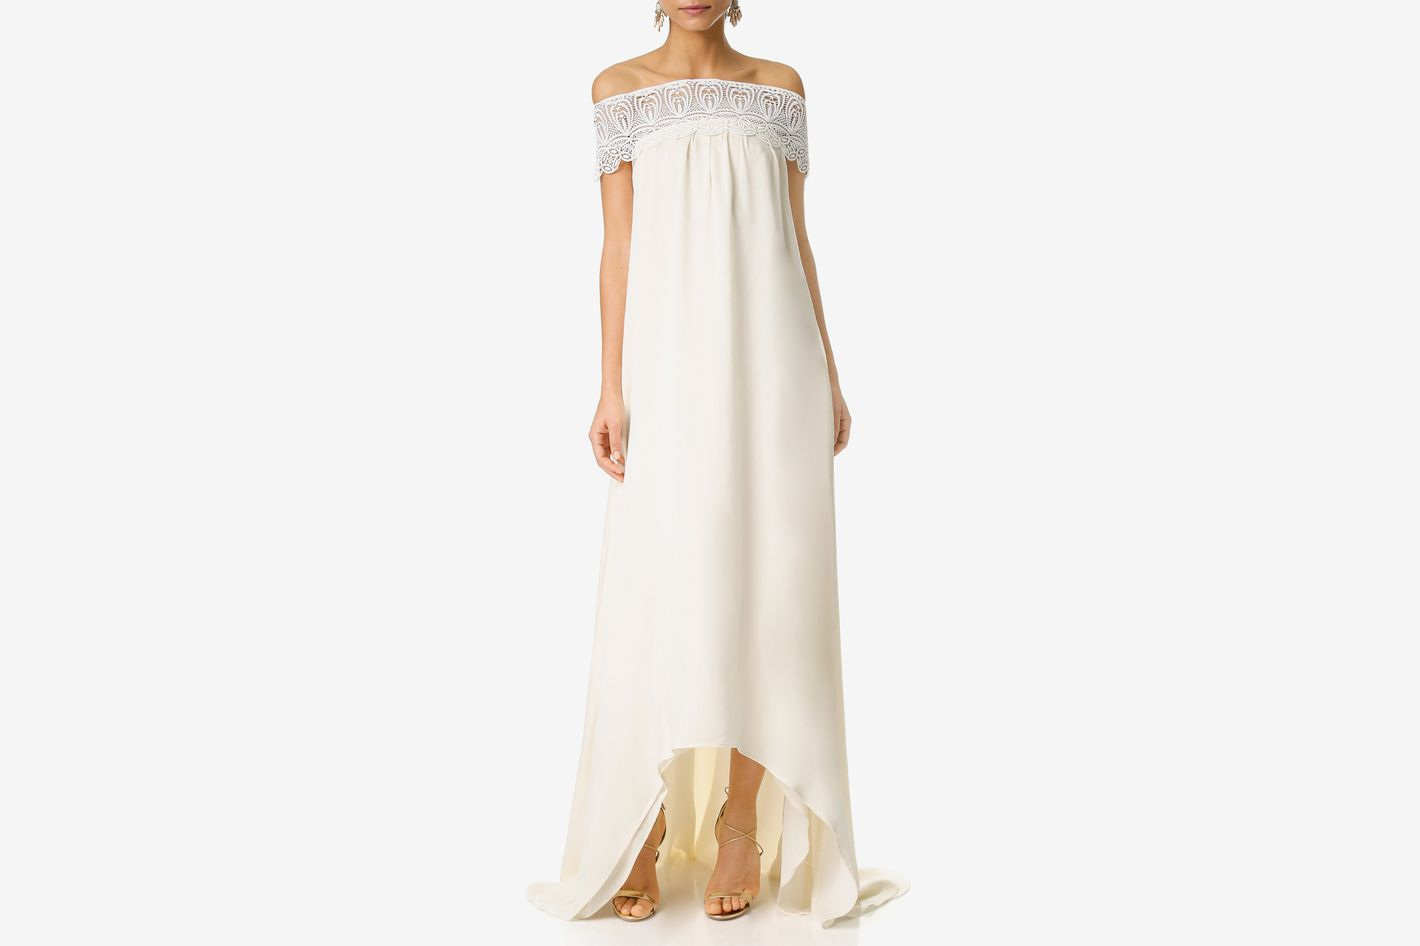 Self-Portrait Off-the-Shoulder Gown